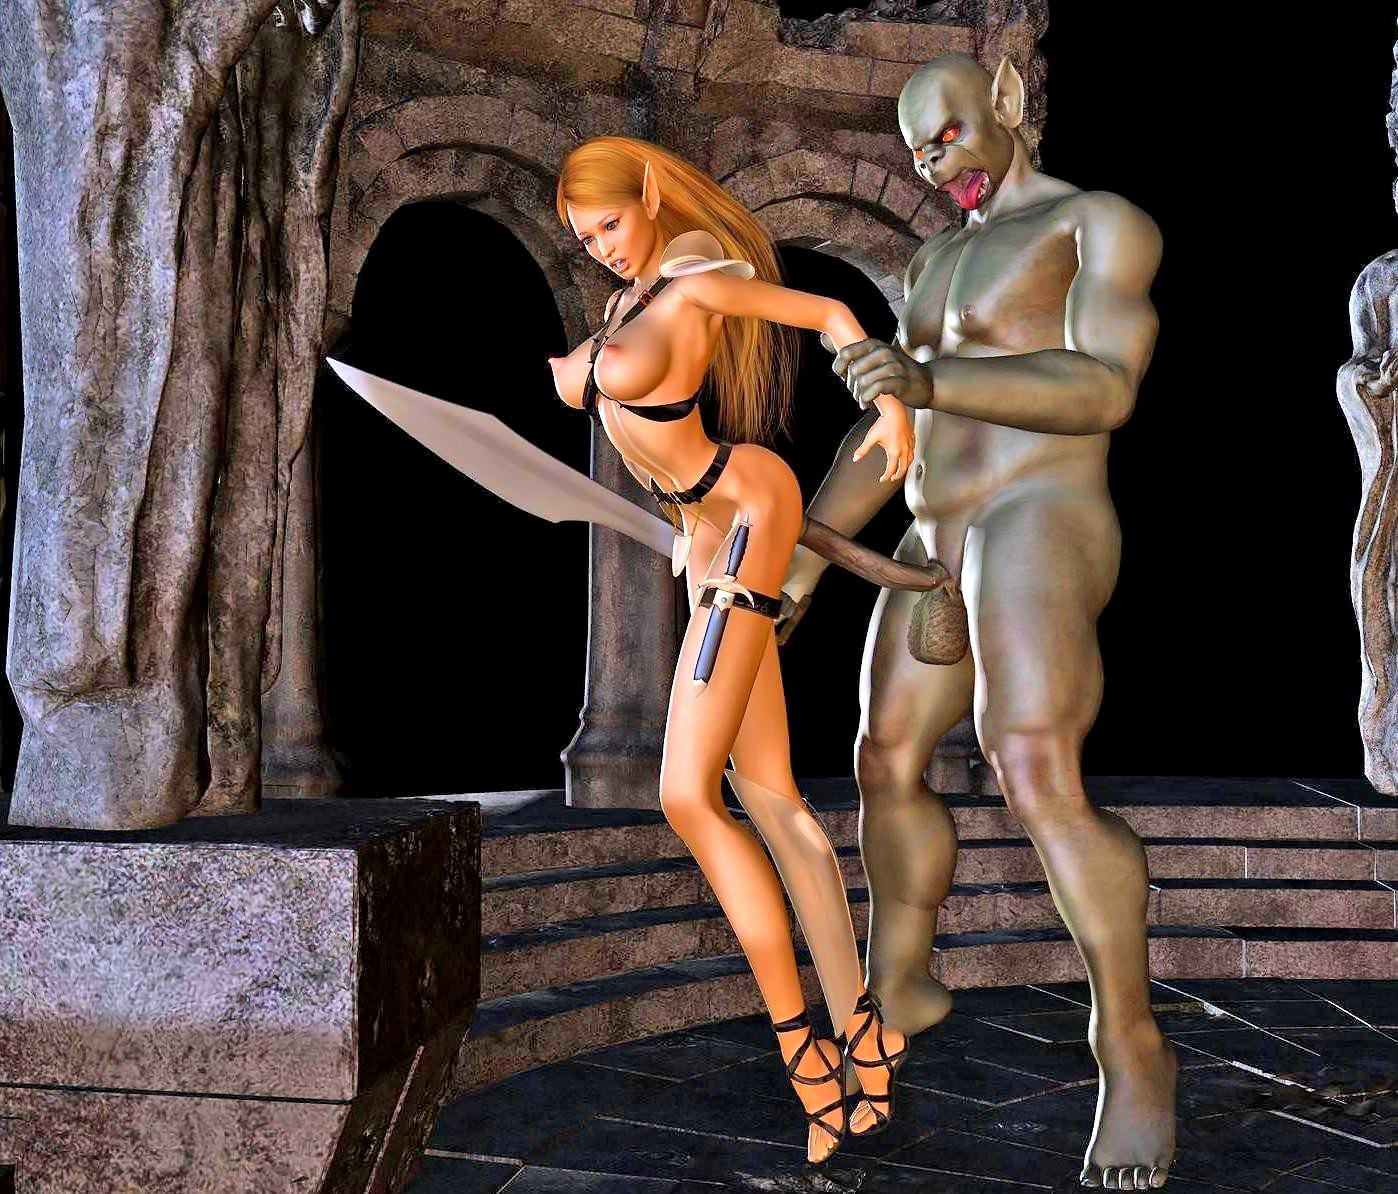 3d animation warrior nude woman adult pictures